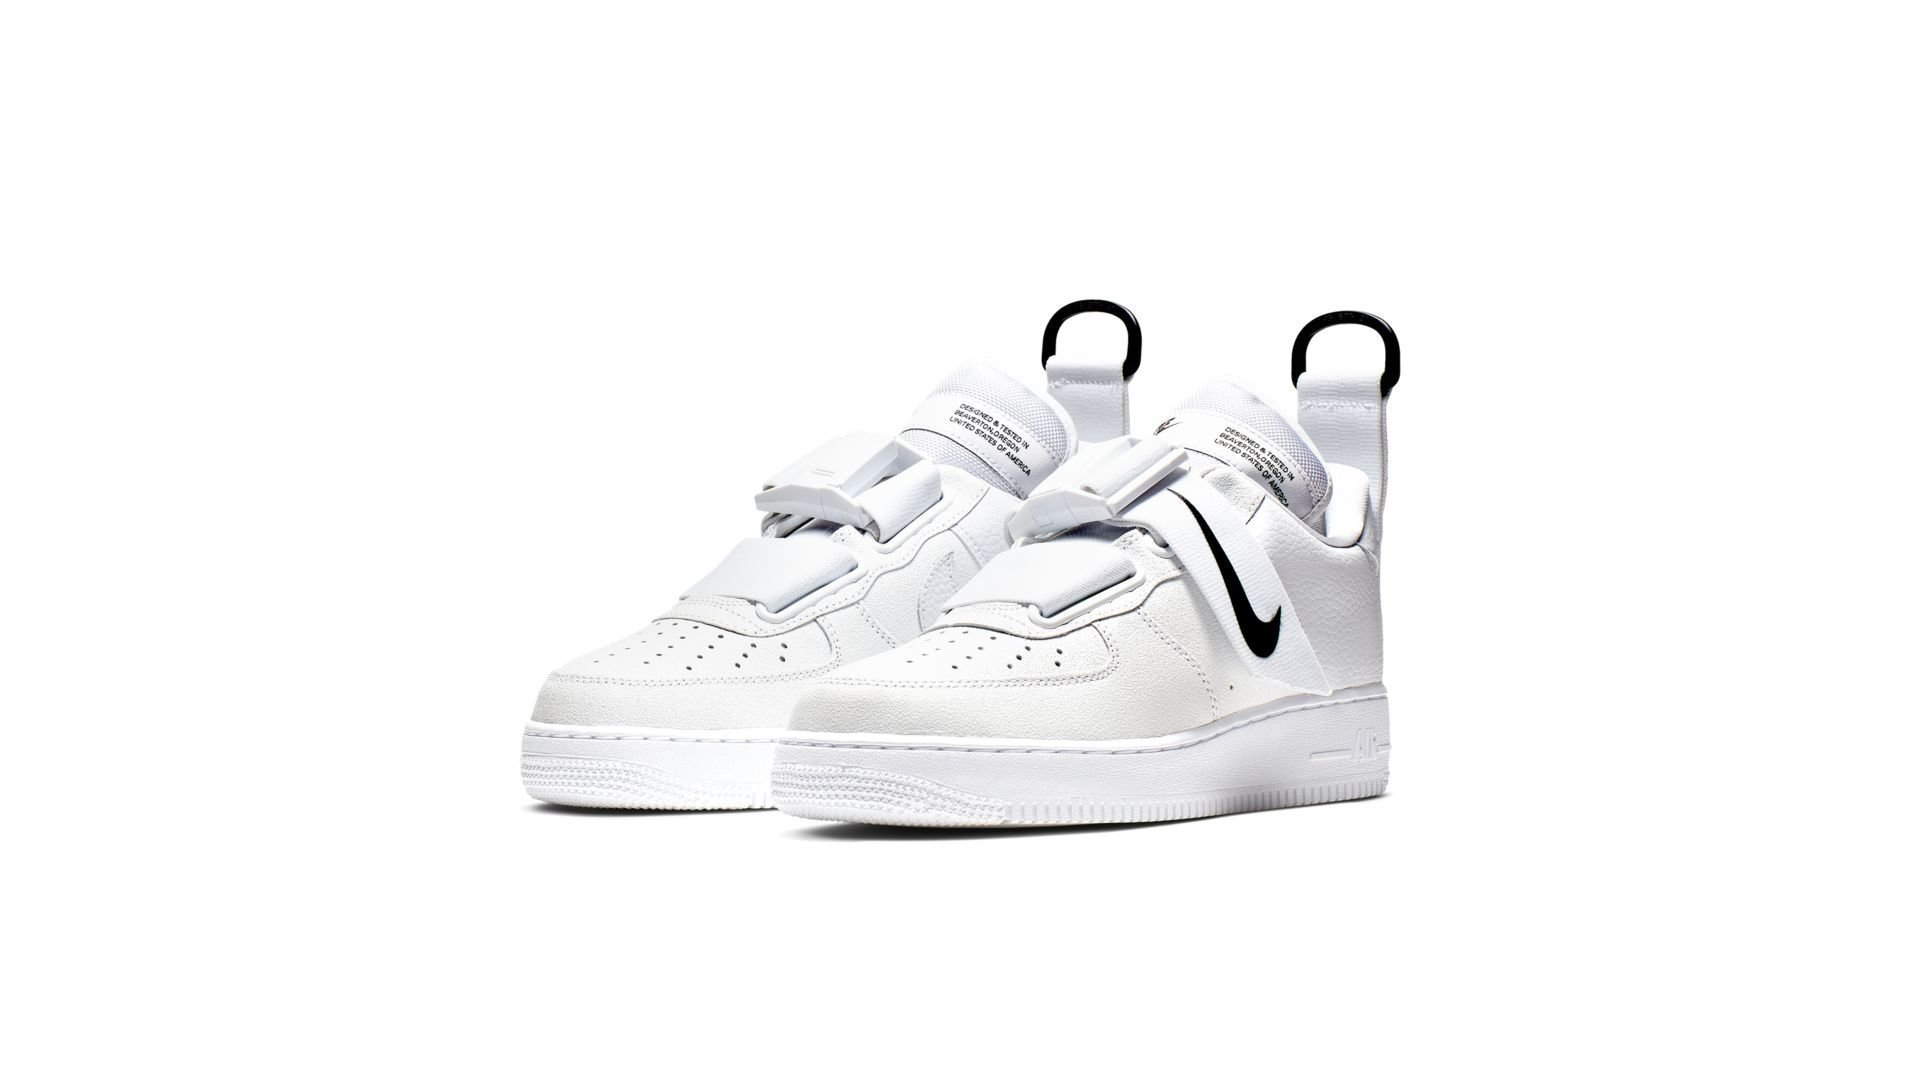 Nike Air Force 1 Utility 'White' (AO1531 101)